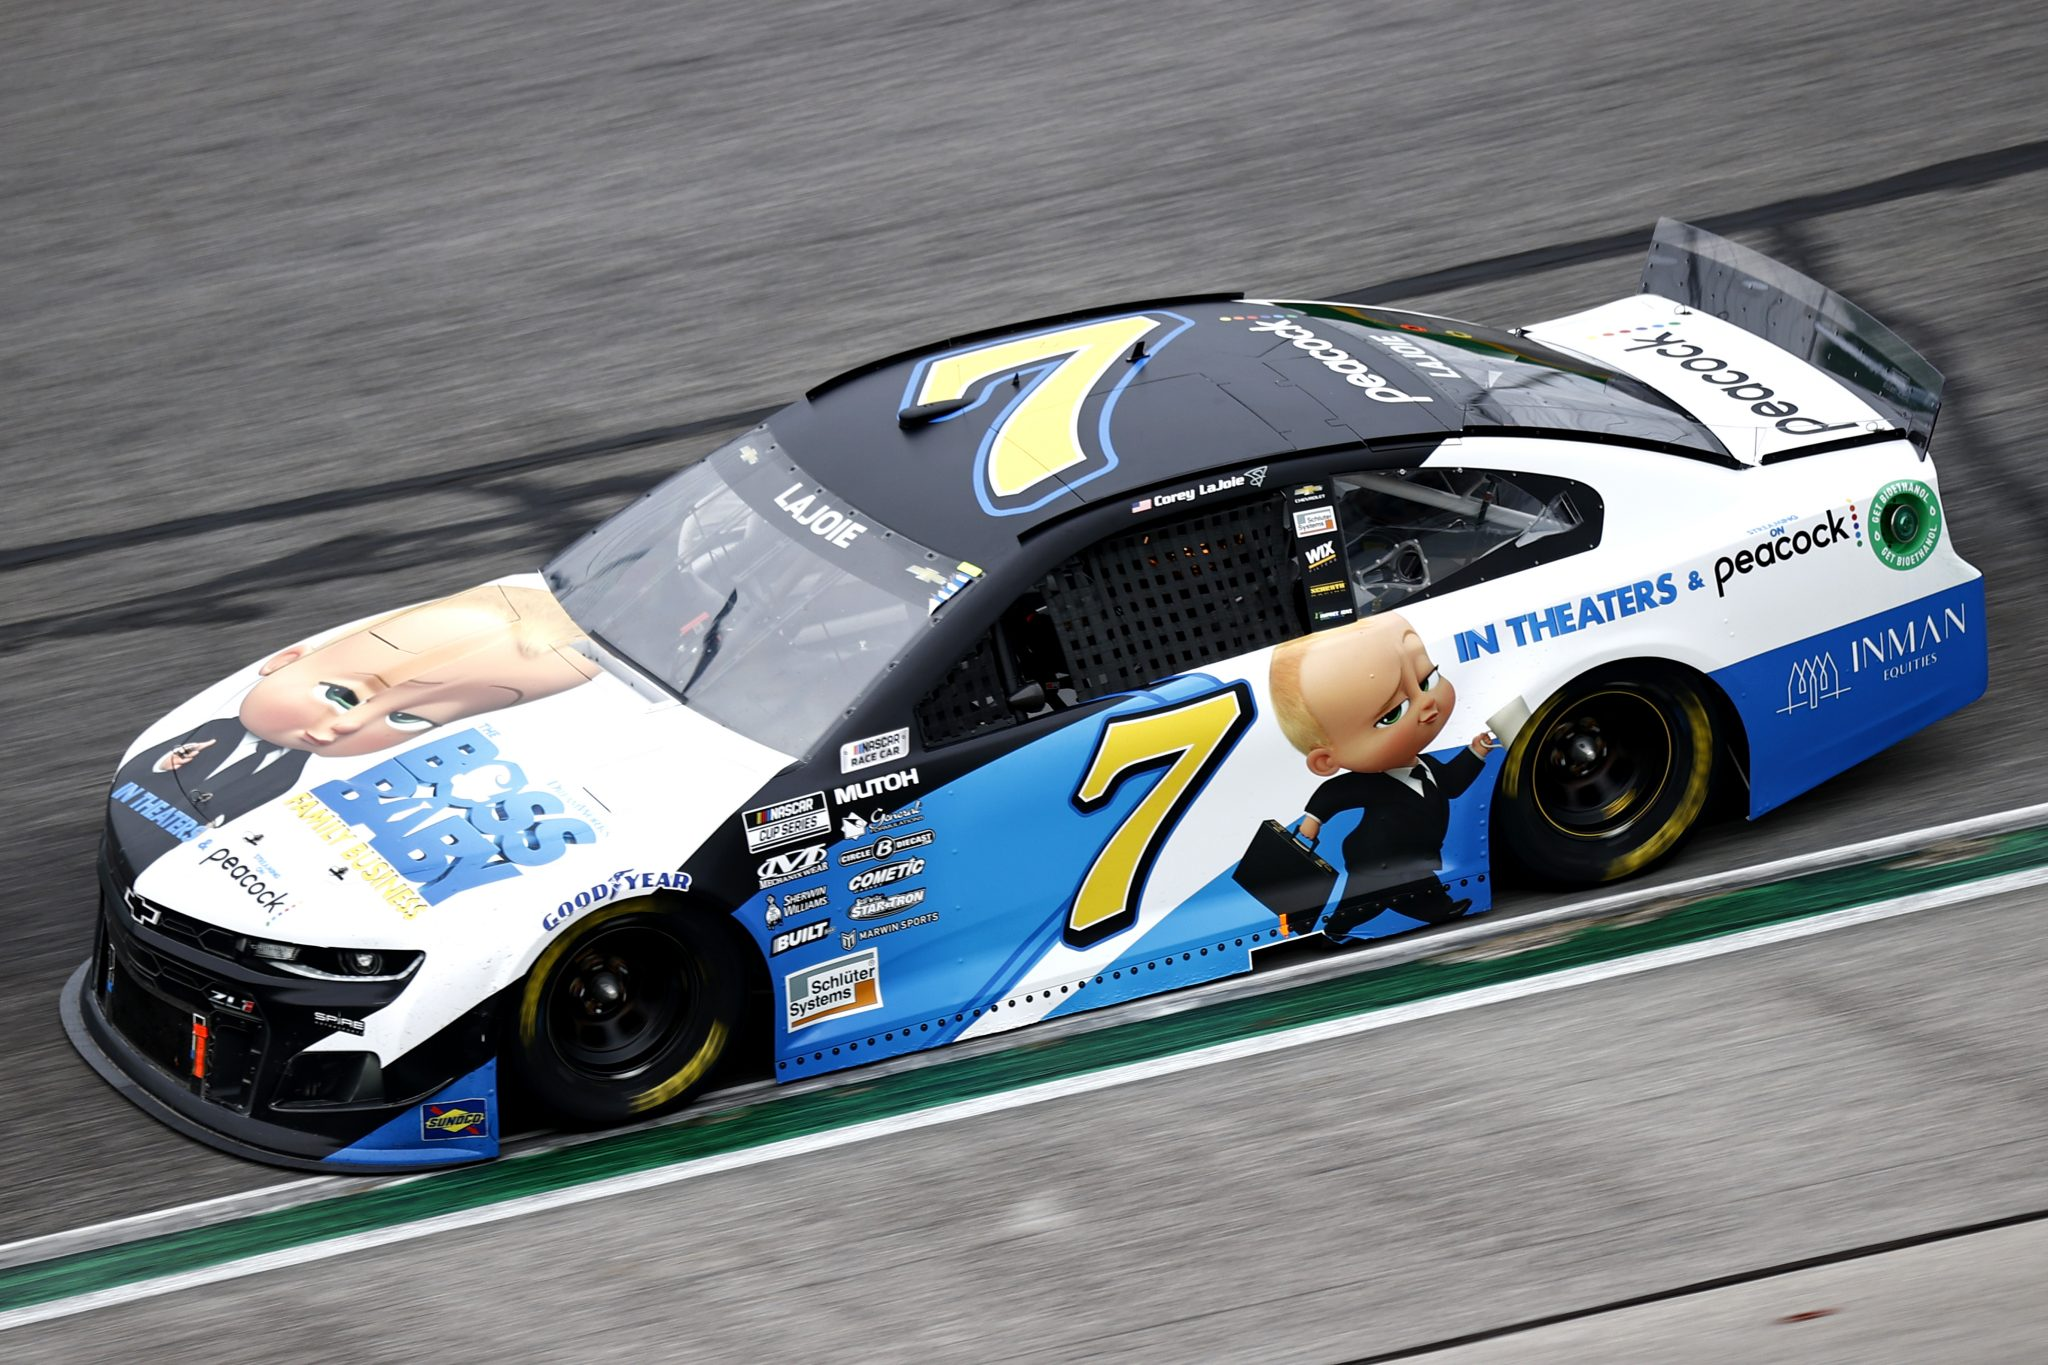 HAMPTON, GEORGIA - JULY 11: Corey LaJoie, driver of the #7 The Boss Baby: Family Business Chevrolet, drives during the NASCAR Cup Series Quaker State 400 presented by Walmart at Atlanta Motor Speedway on July 11, 2021 in Hampton, Georgia. (Photo by Jared C. Tilton/Getty Images)   Getty Images